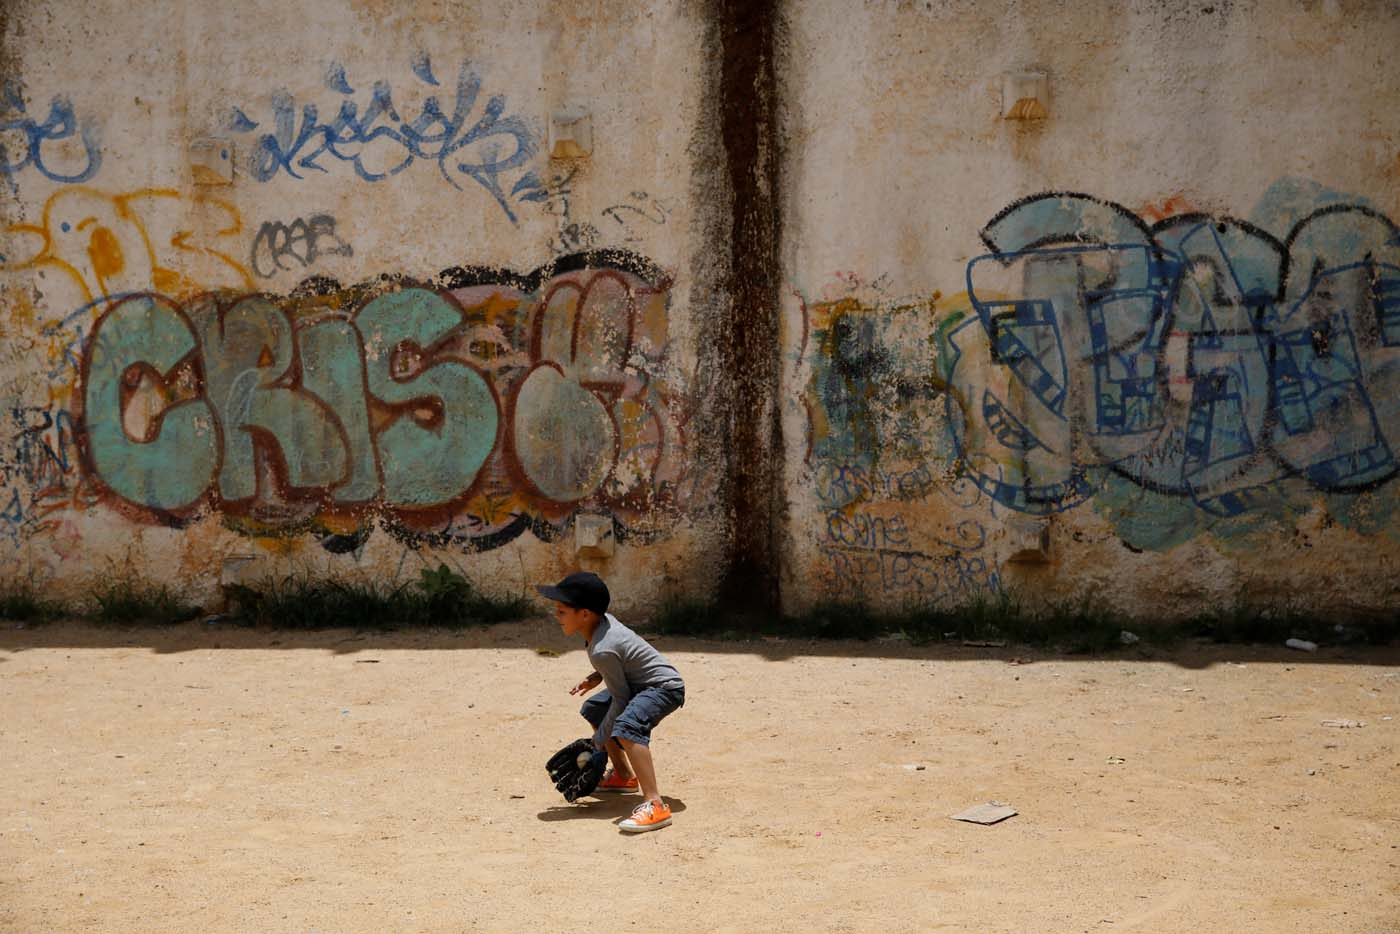 Aiberth Tovar, 7, practices baseball close his house in Caracas, Venezuela August 30, 2017. Picture taken August 30, 2017. REUTERS/Carlos Garcia Rawlins